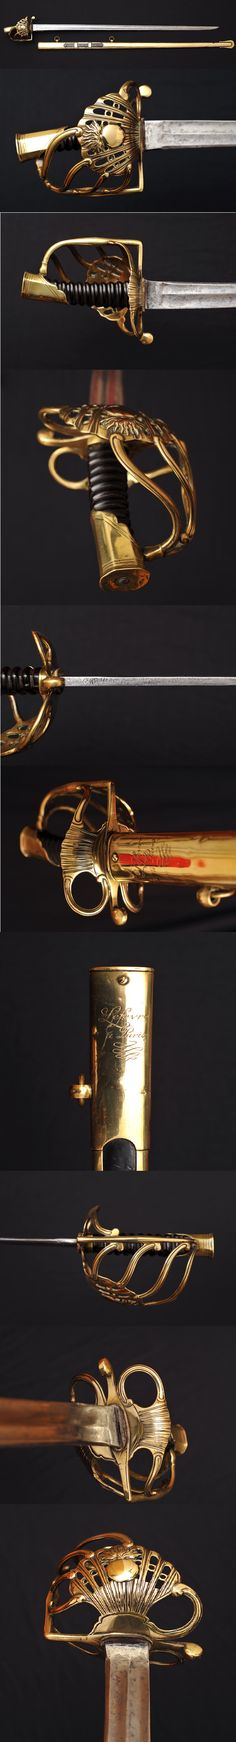 Officer of the Imperial Guard Grenadier Horse's sword.   In any case it did belong to an Heavy Cavalry Officer from Napoléon Army, dated from October 1811.